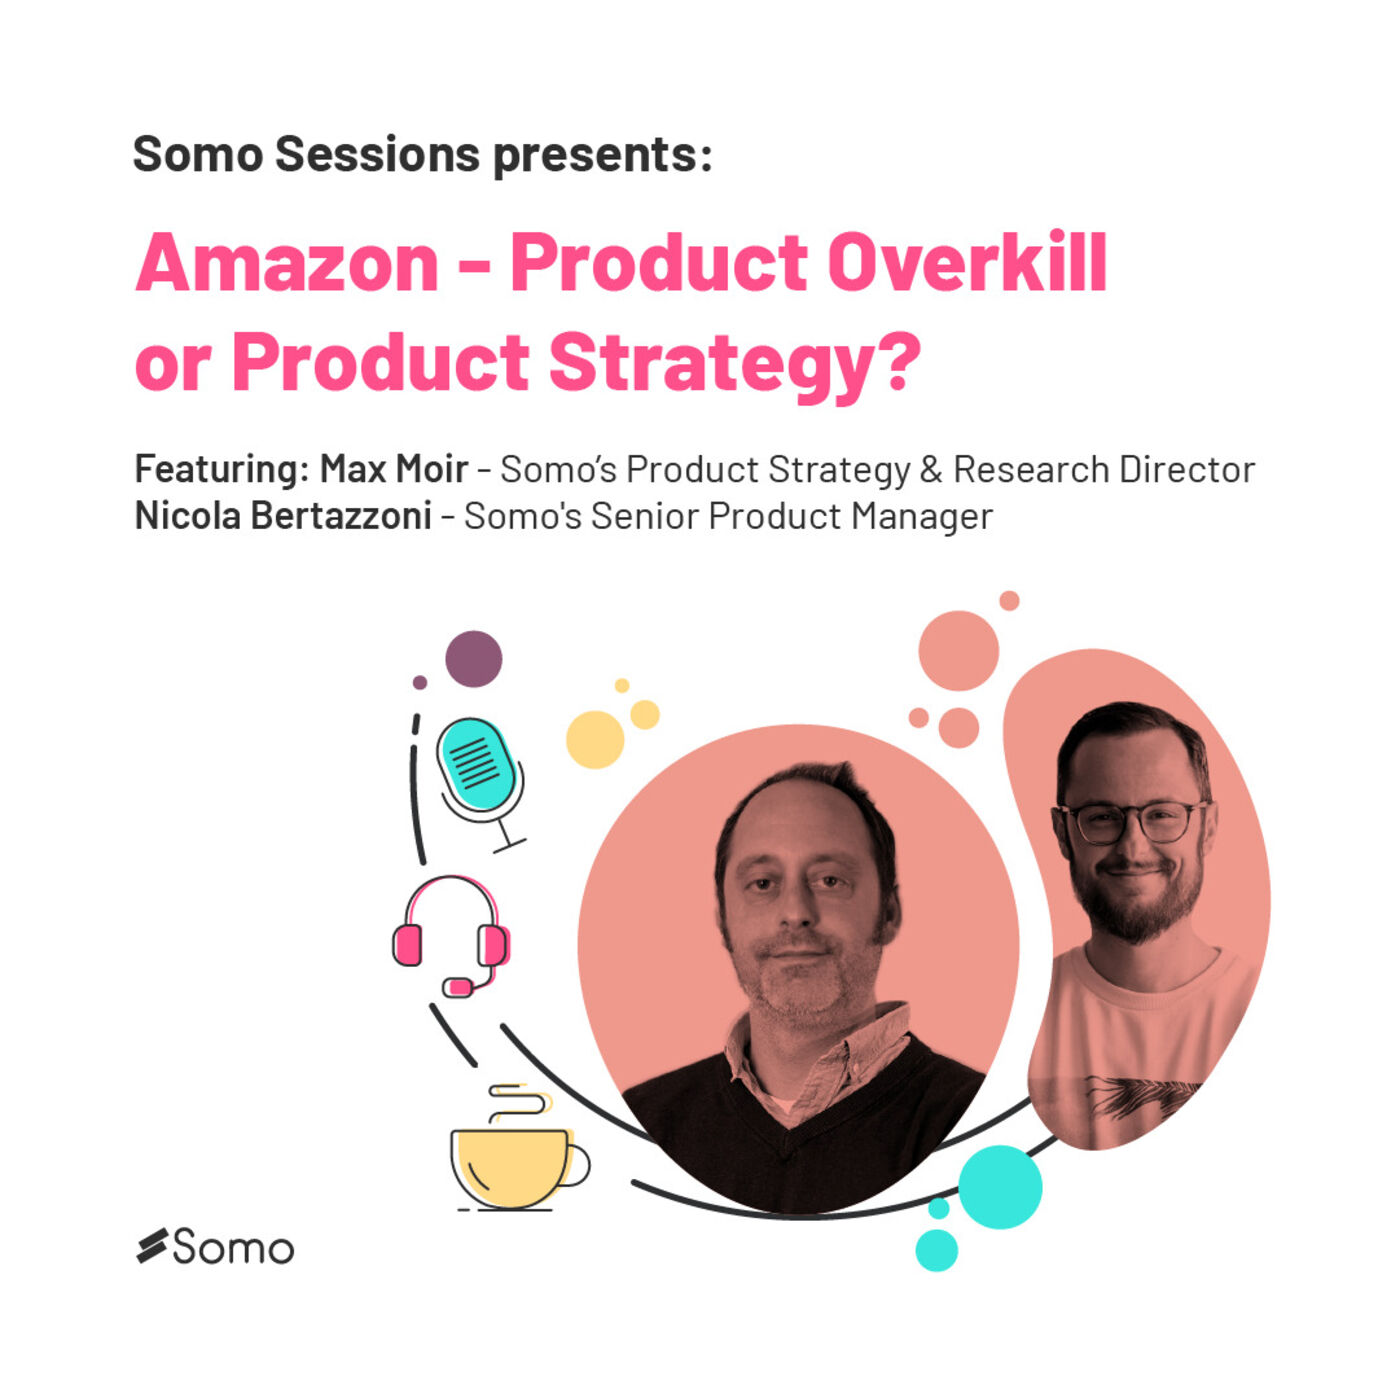 2. Amazon - Product Overkill or Product Strategy?